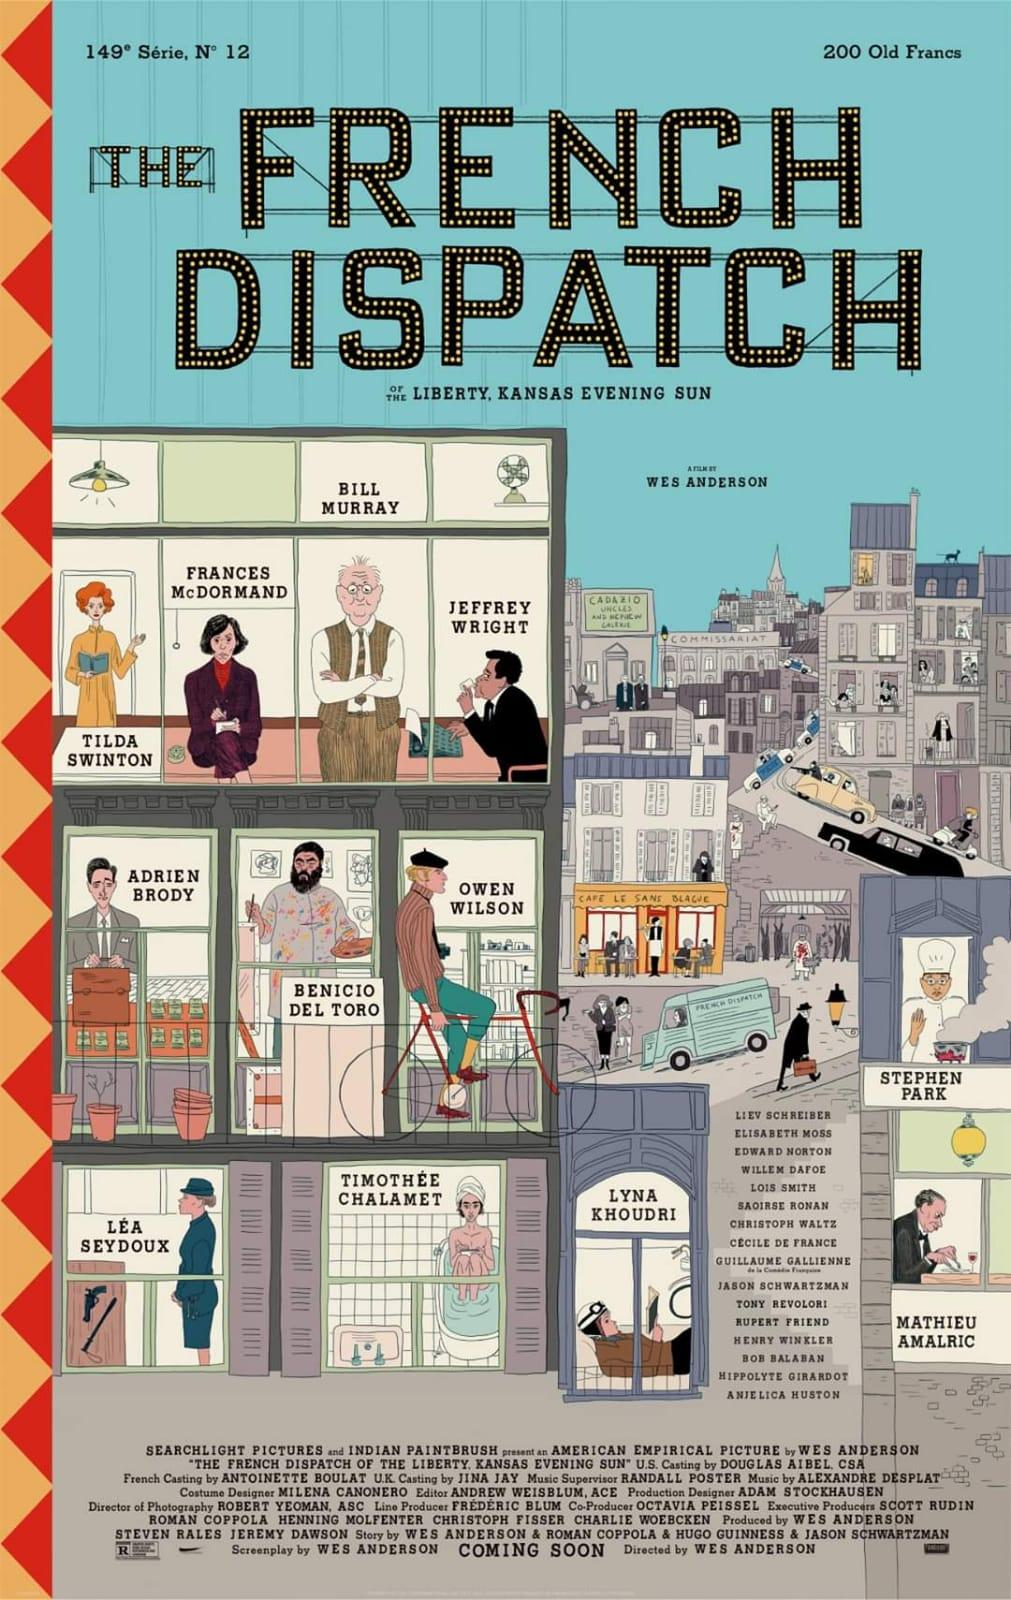 french-dispatch-film-wes-anderson-locandina